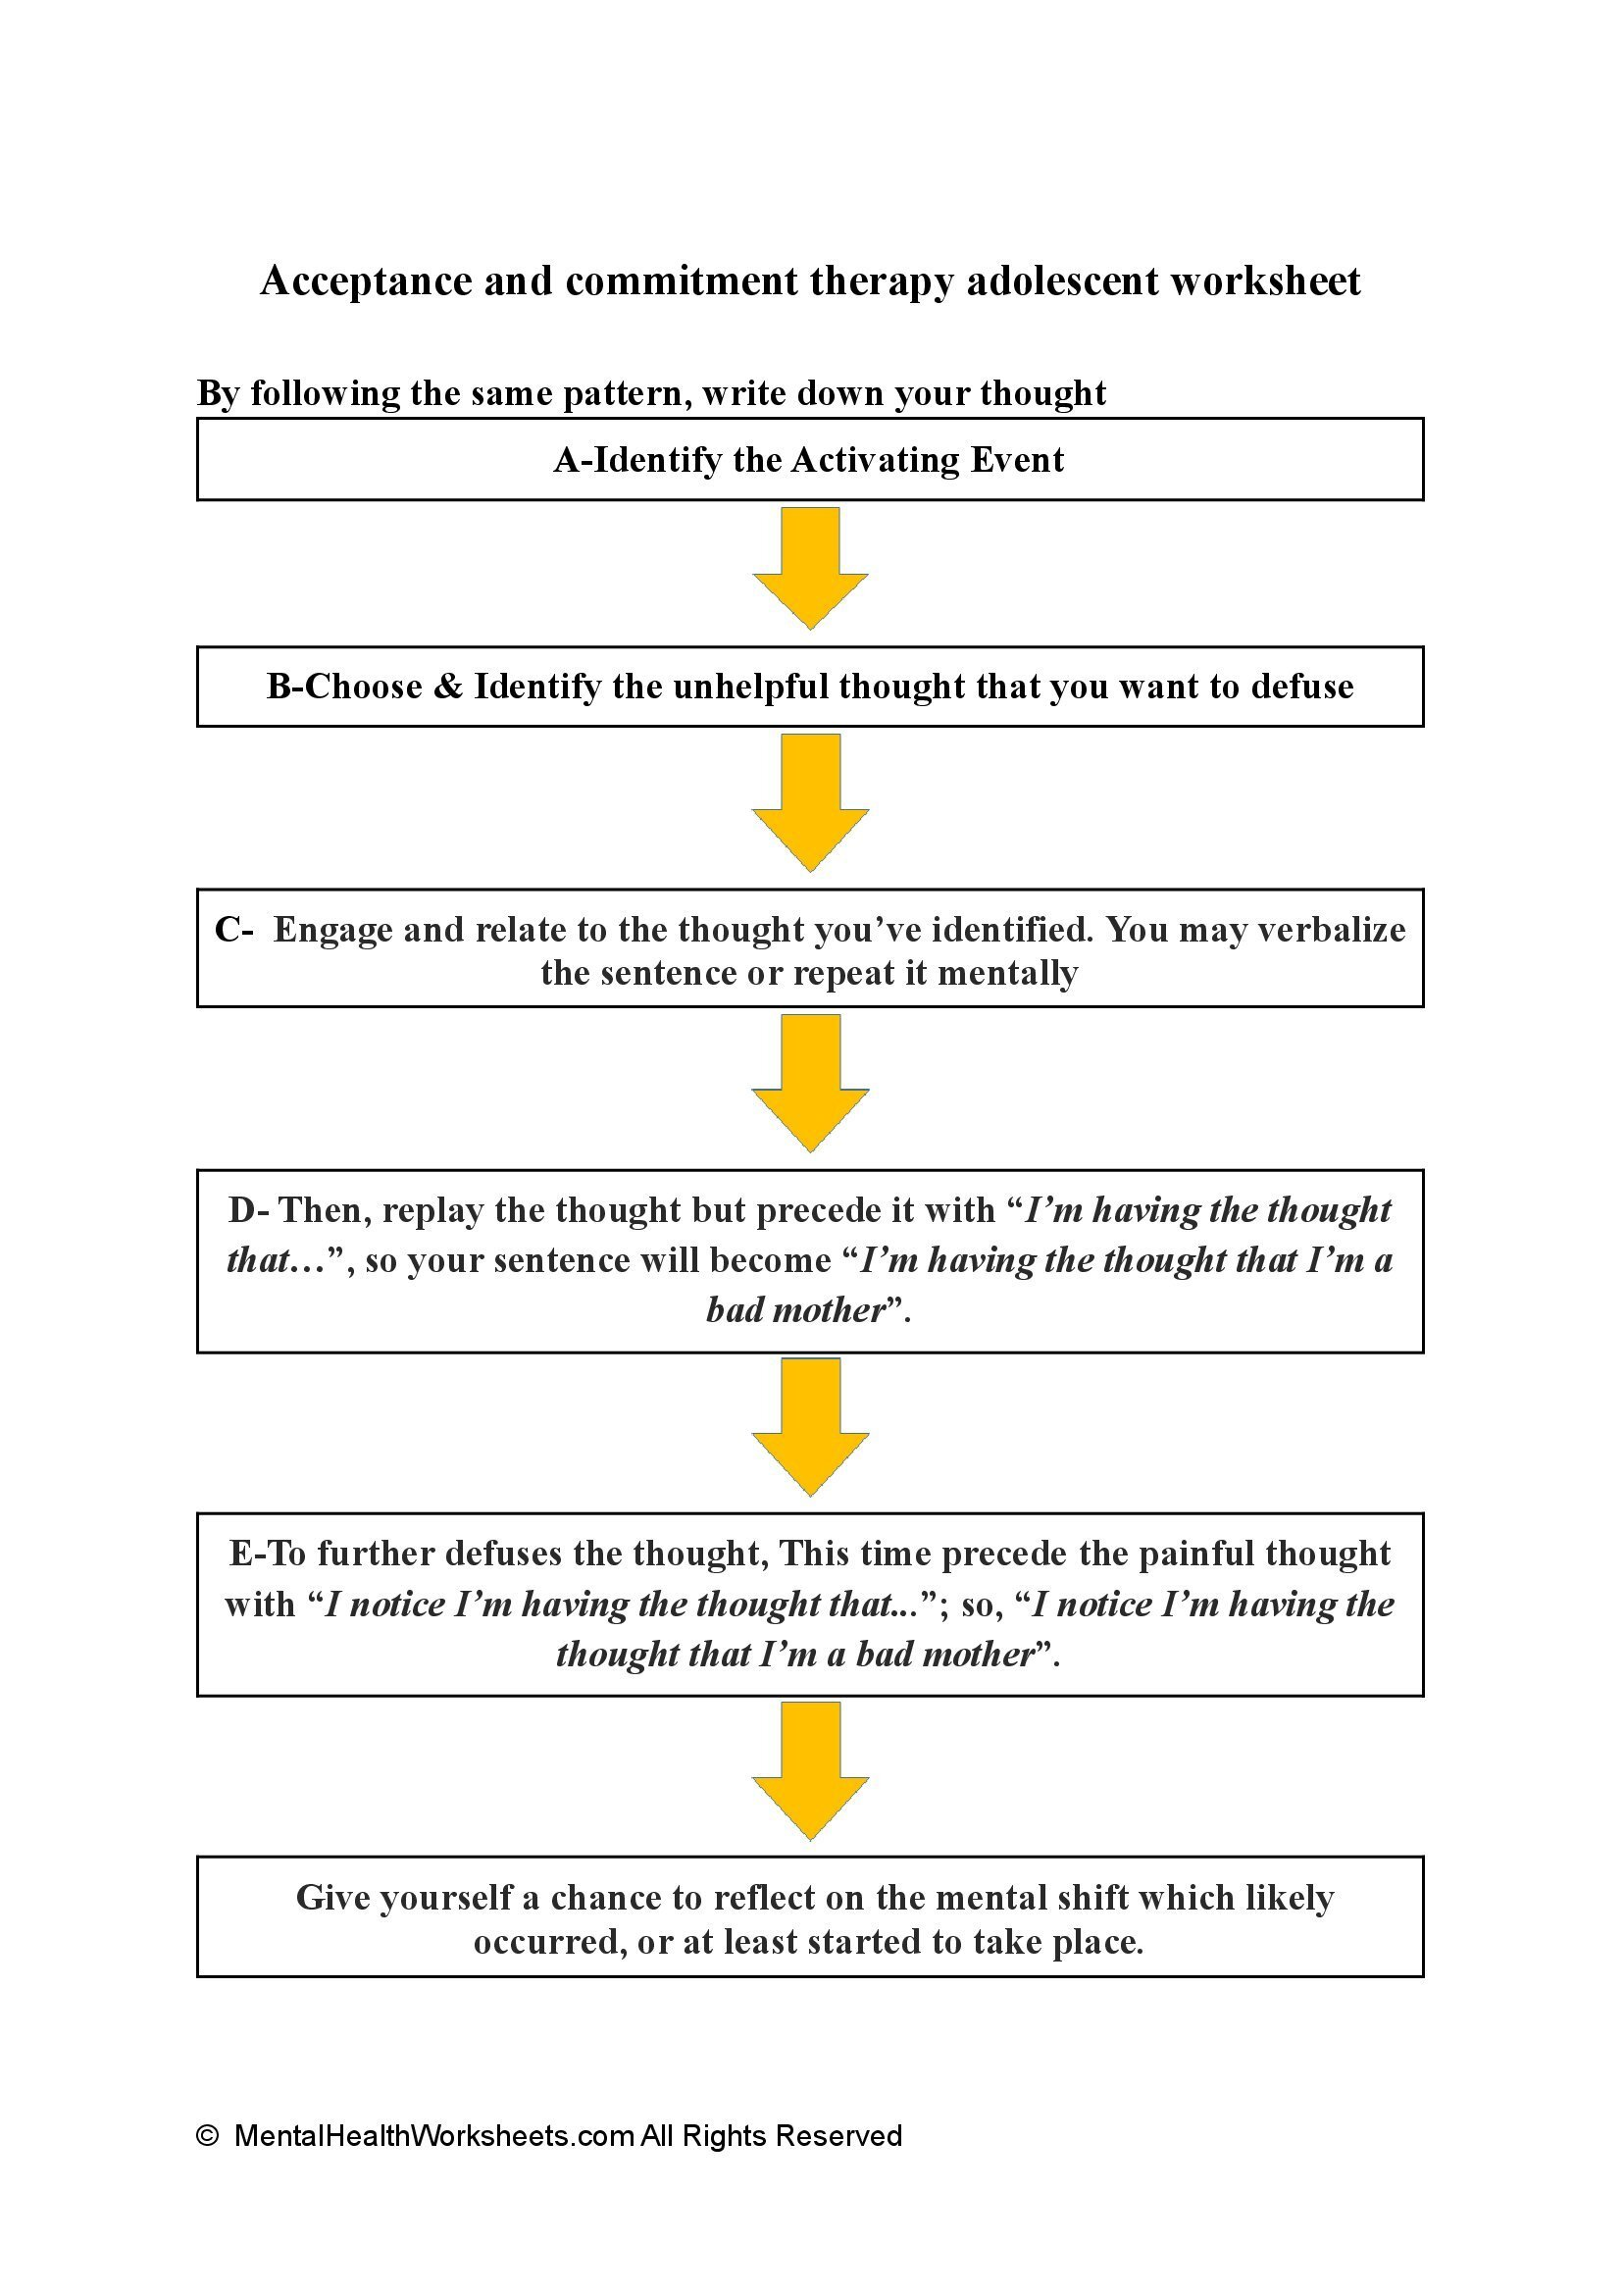 Acceptance and commitment therapy adolescent worksheet